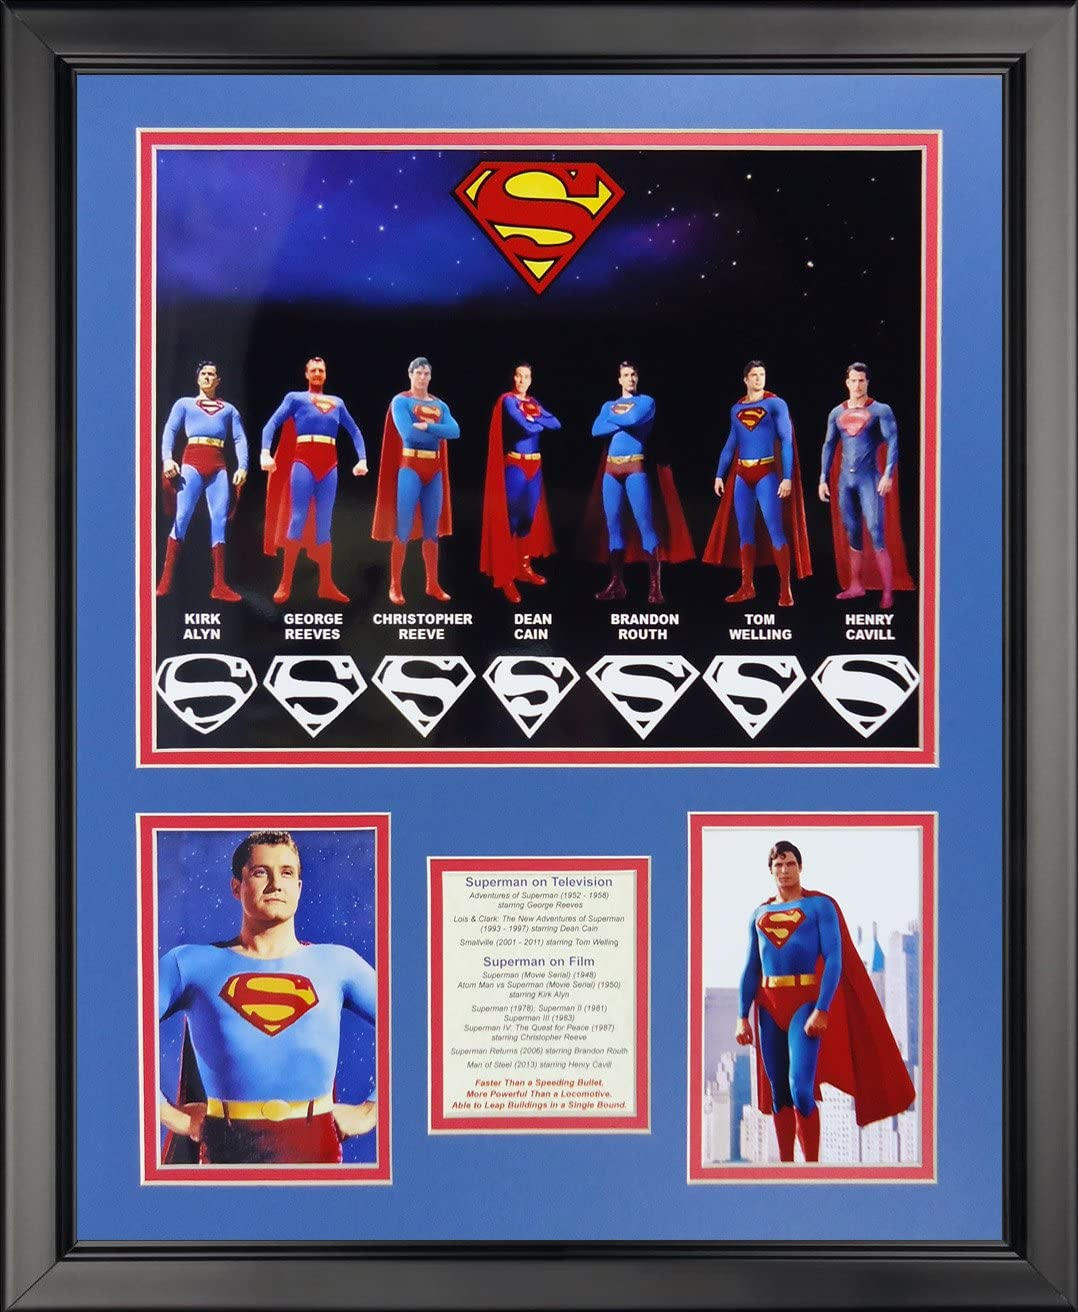 Charlotte Mall Max 45% OFF Legends Never Die Superman Collage 20